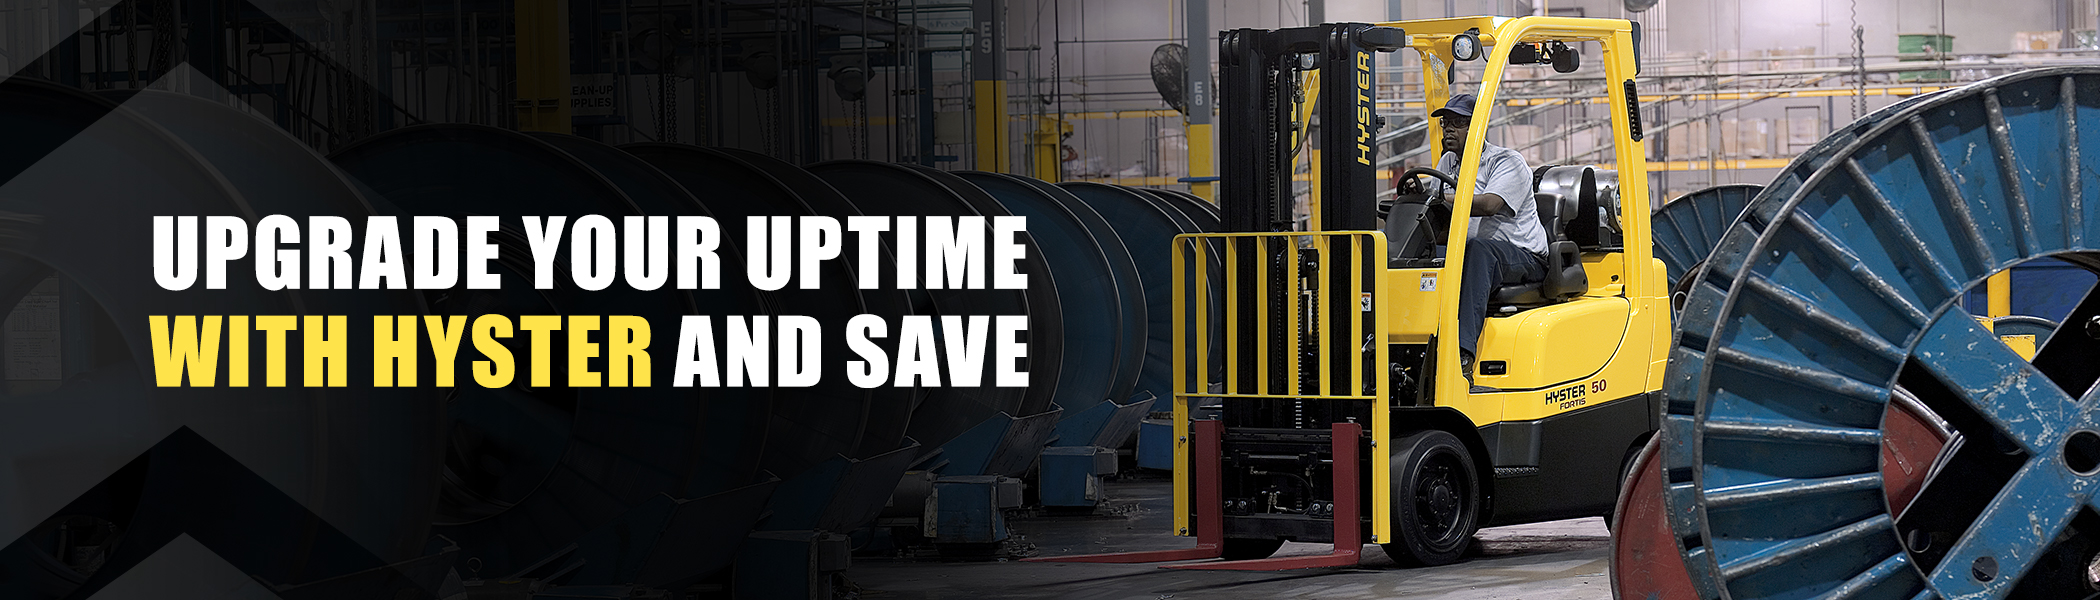 Upgrade your uptime with Hyster and save